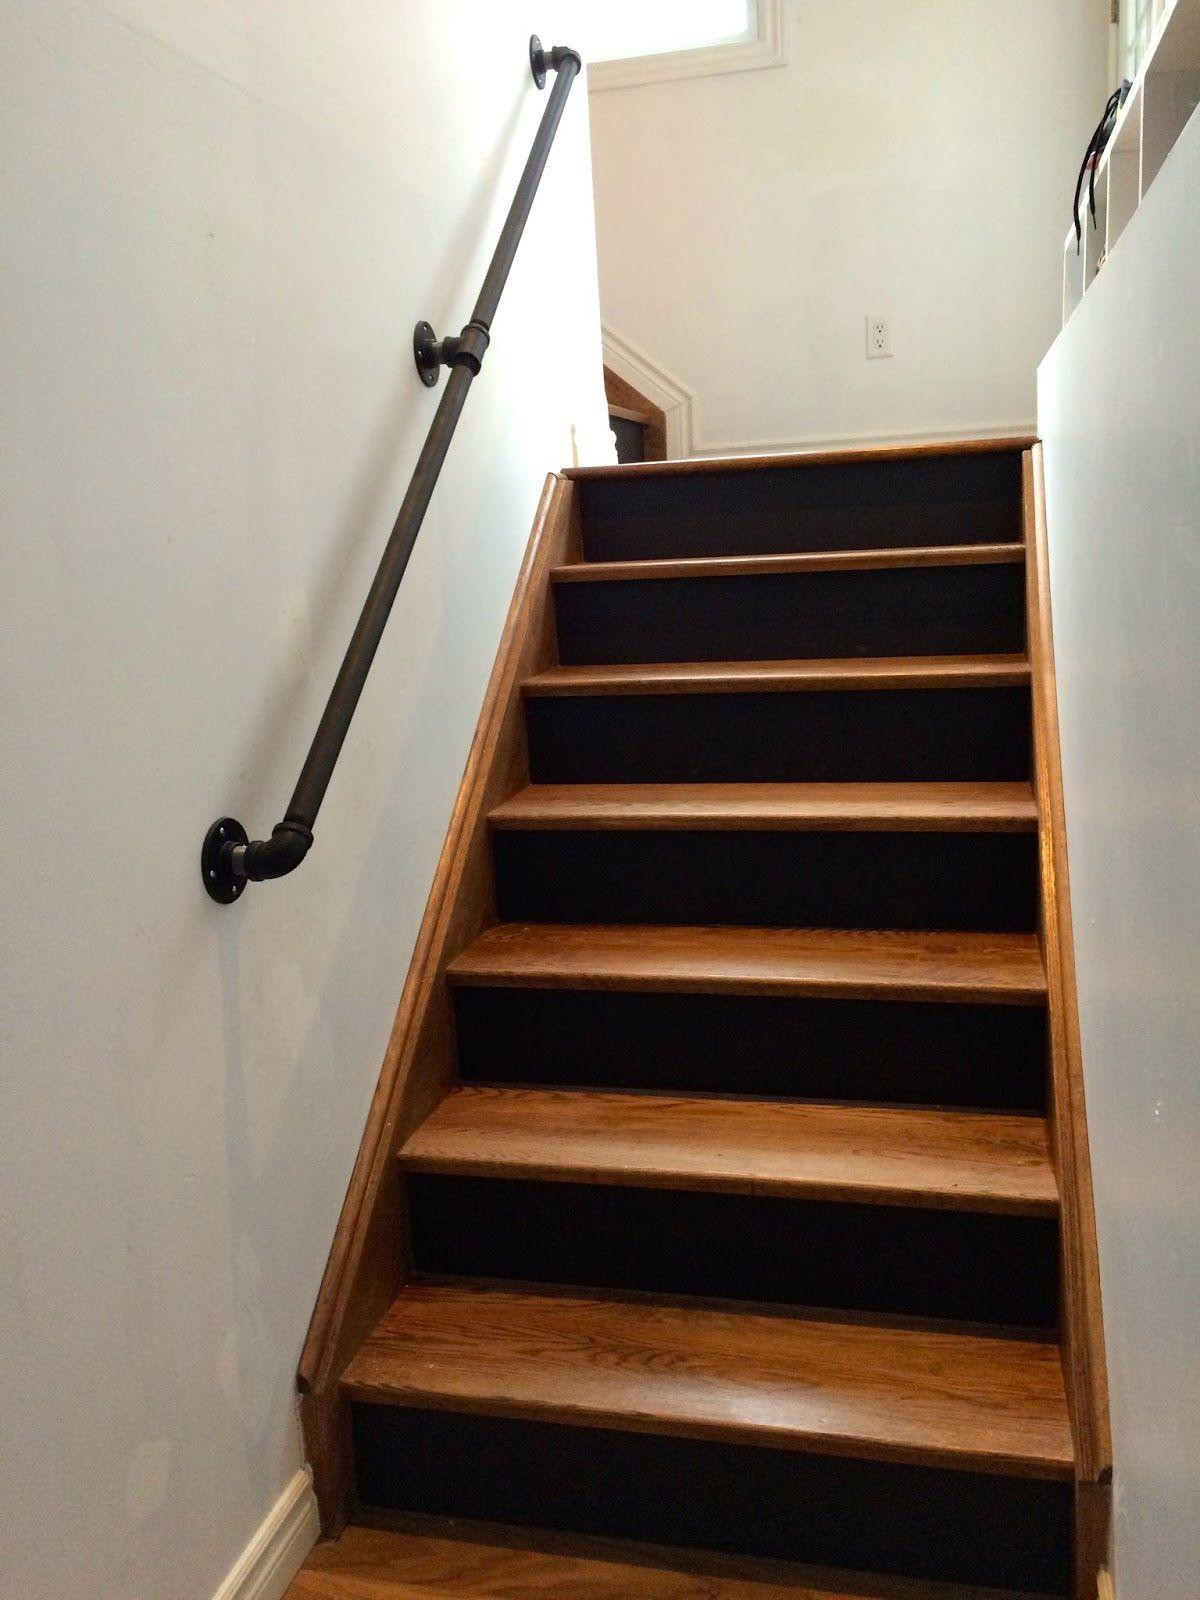 install hardwood flooring around banister of new of diy stair railing ideas stock artsvisuelscaribeens com in diy stair railing ideas lovely gas pipe railing walnut stairs black risers stairs